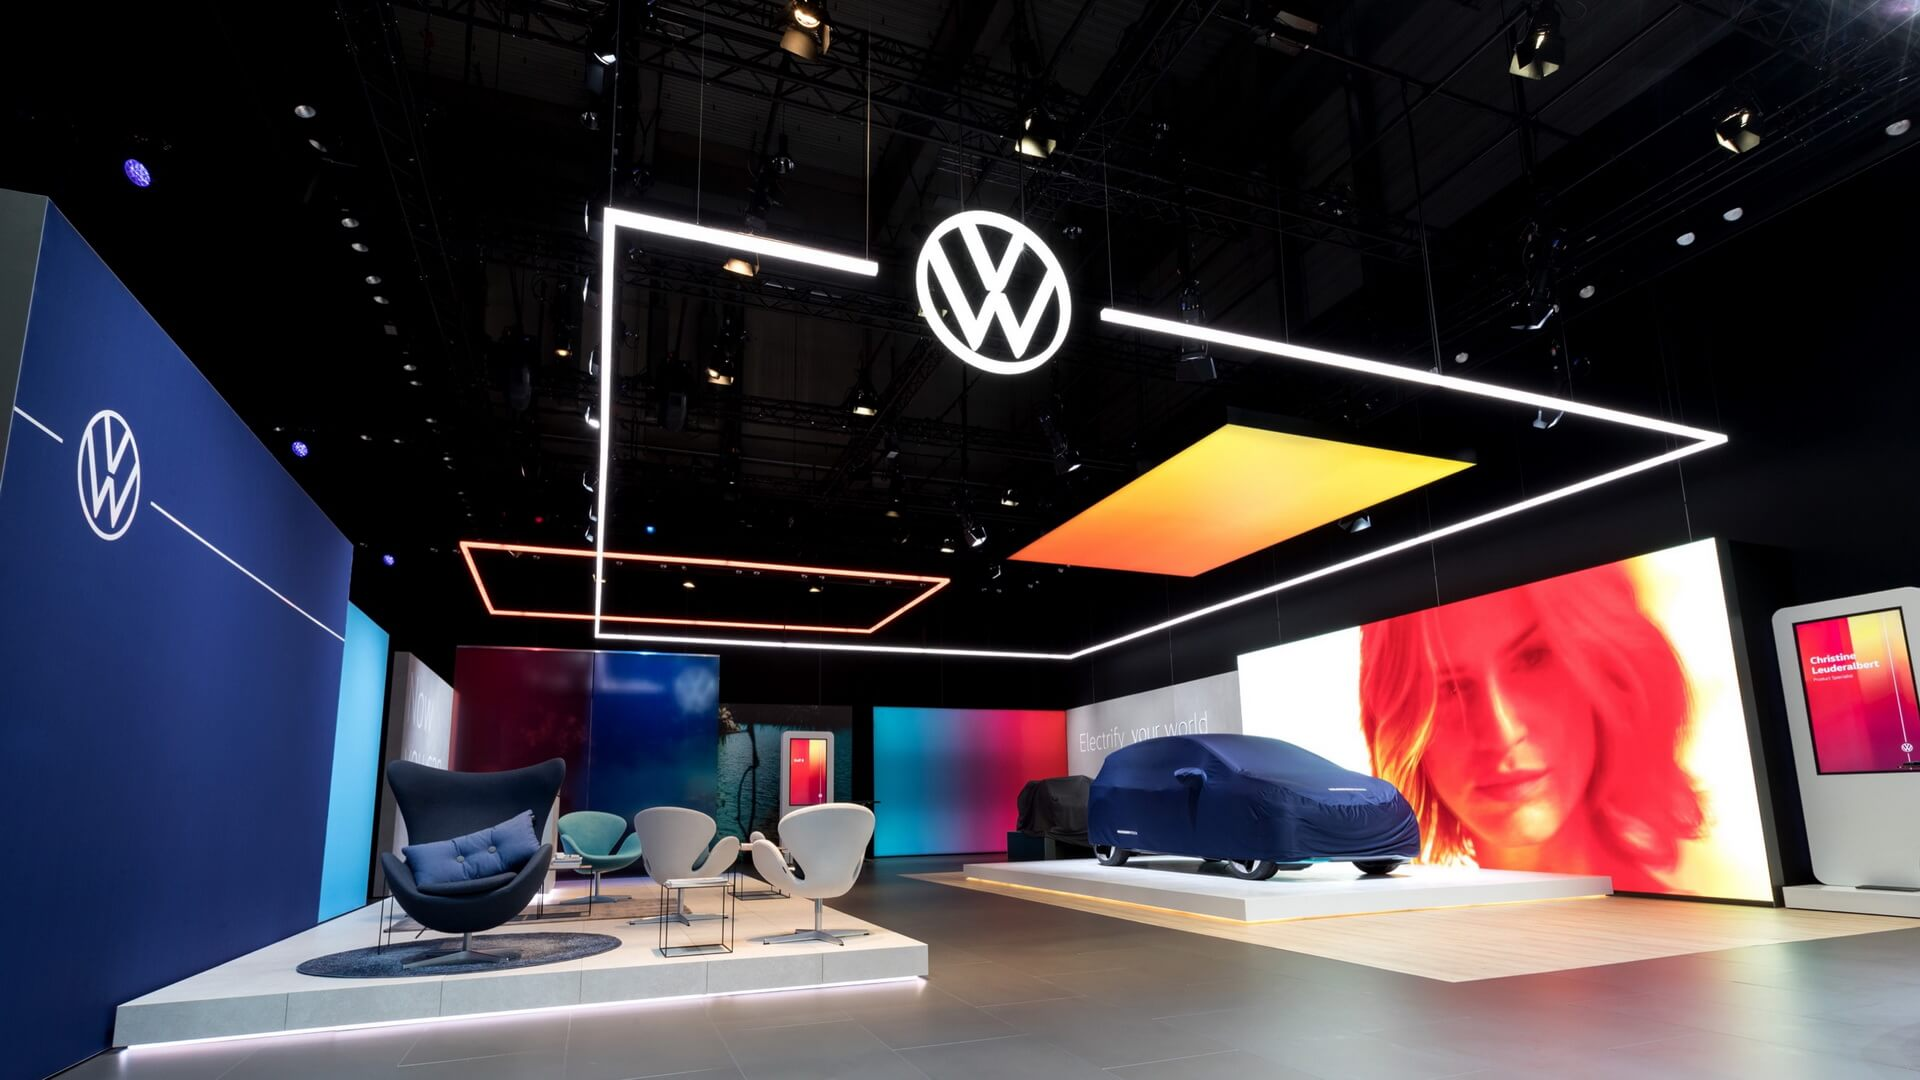 vw-new-logo-1